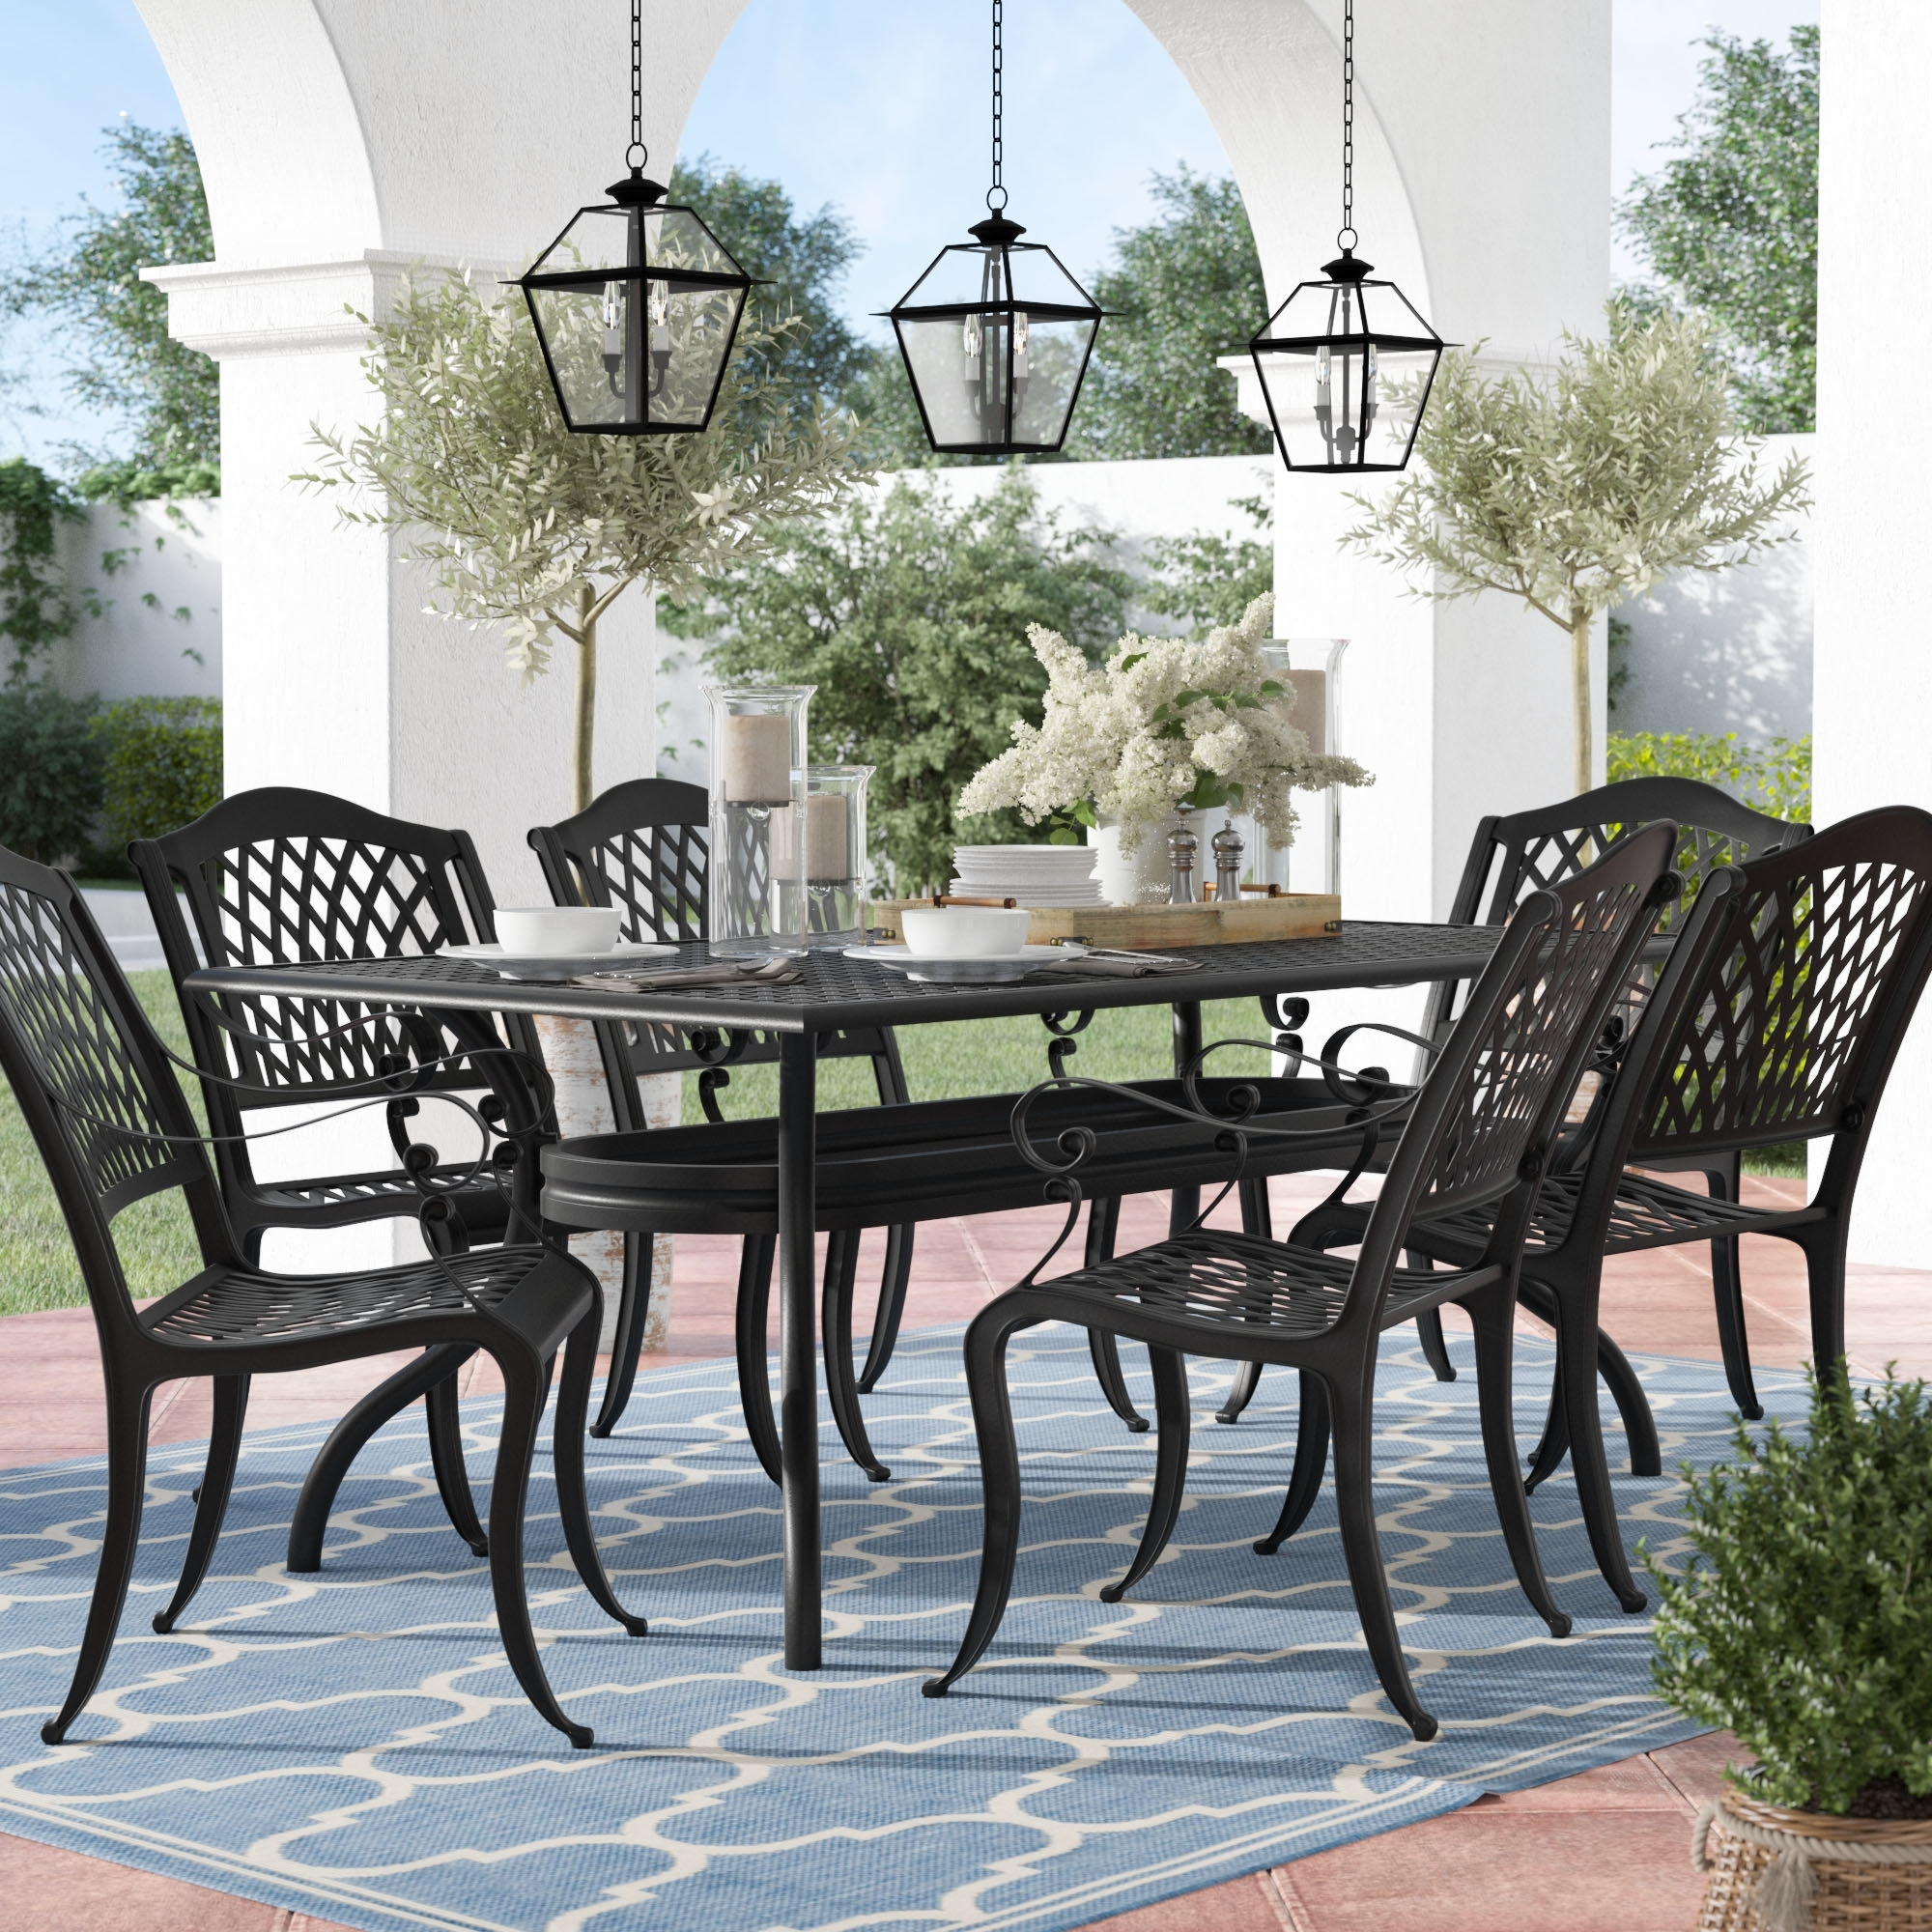 Metal Patio Furniture You'll Love | Wayfair Throughout Best And Newest Market 7 Piece Dining Sets With Side Chairs (View 13 of 20)